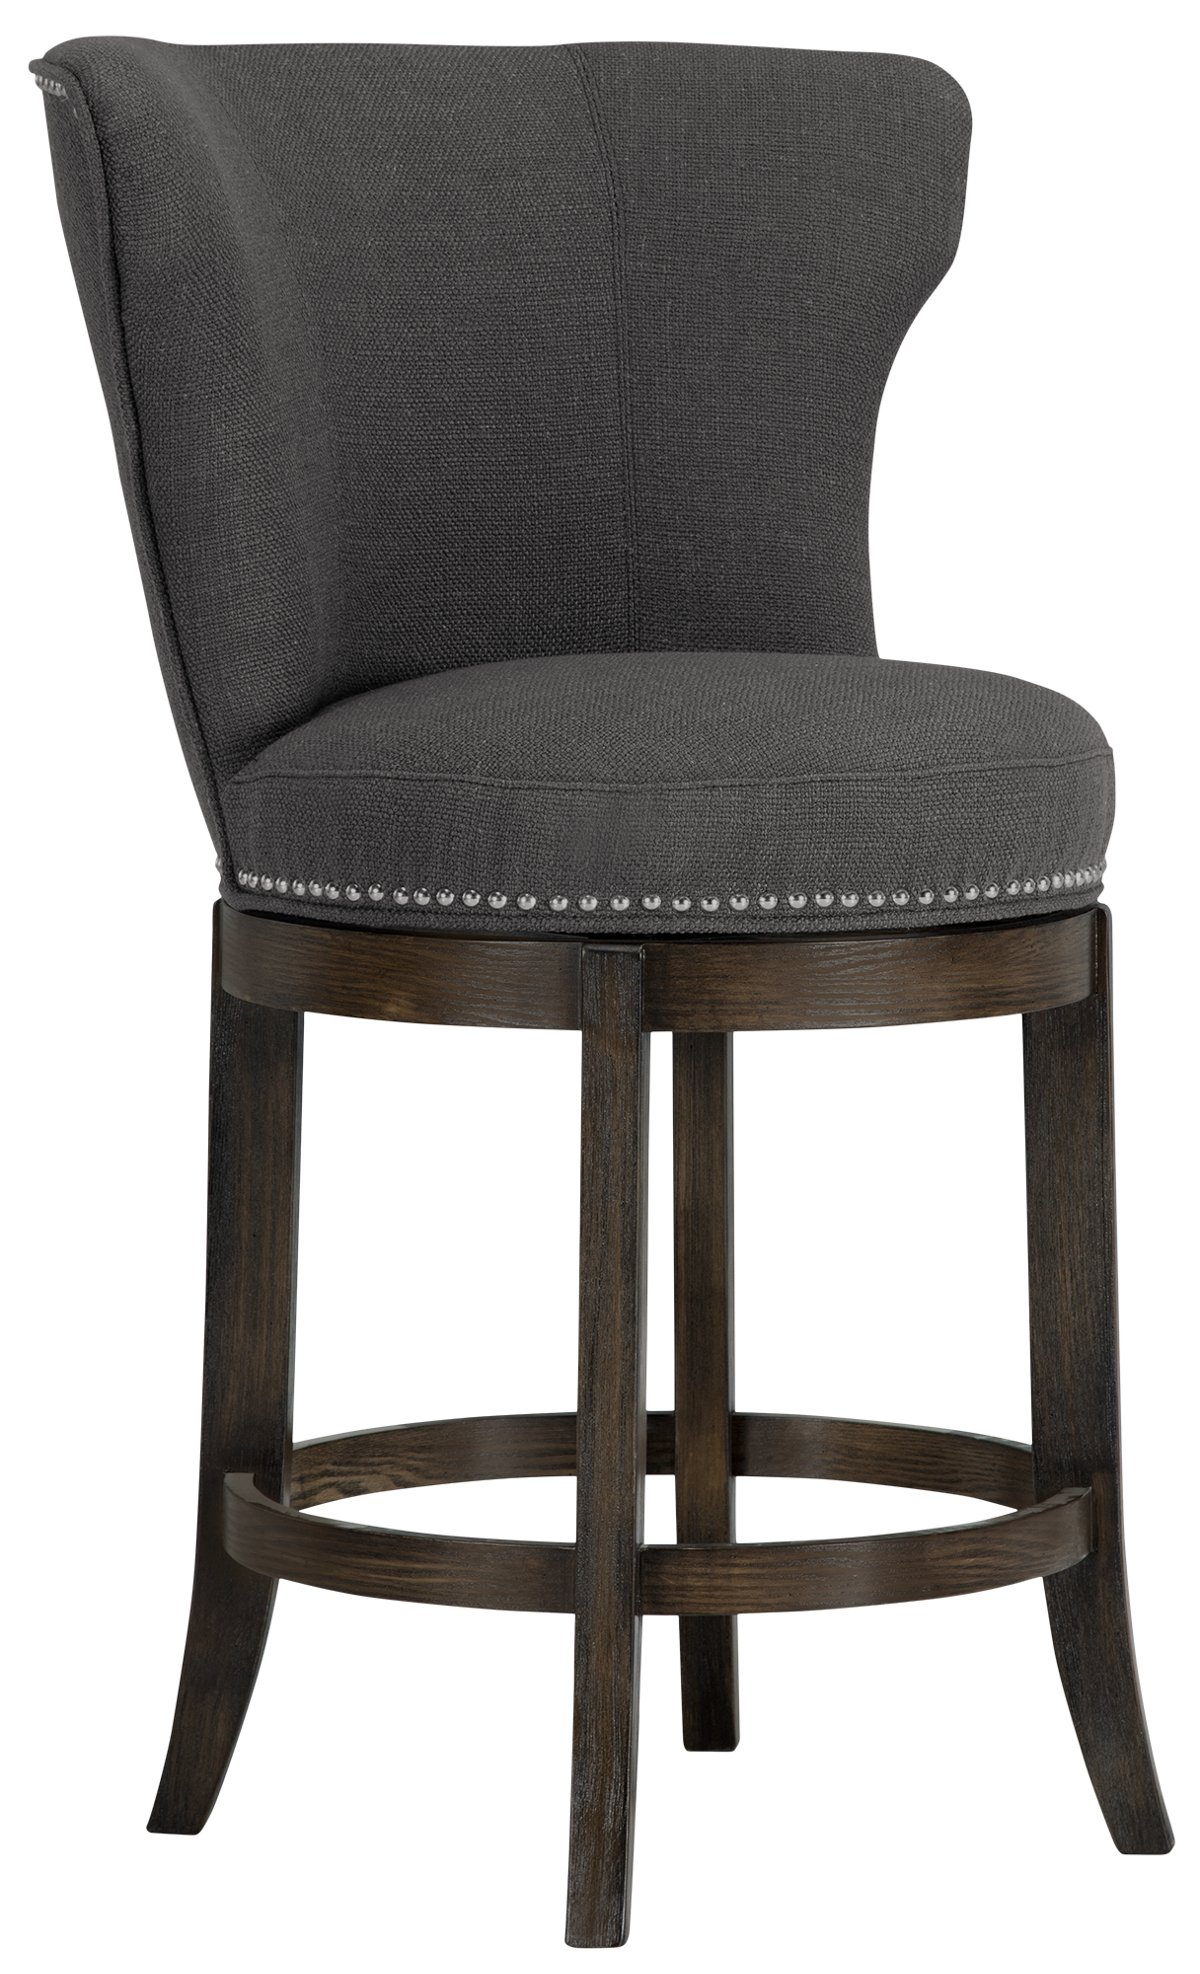 Cayden Dark Gray Fabric 24 Swivel Barstool